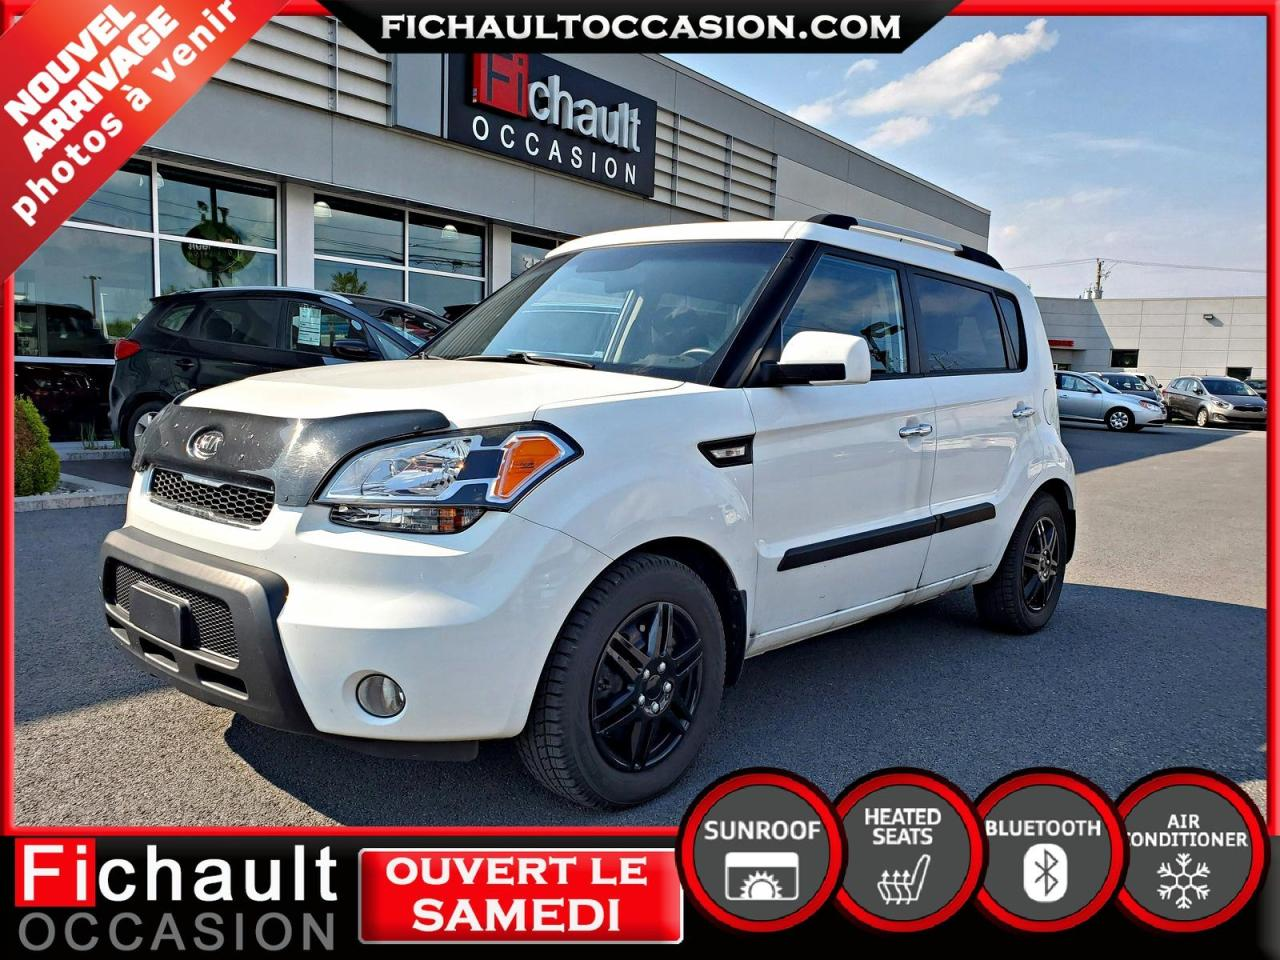 used 2011 kia soul 4u roues d hiver inclus for sale in châteauguay, quebec carpages.ca